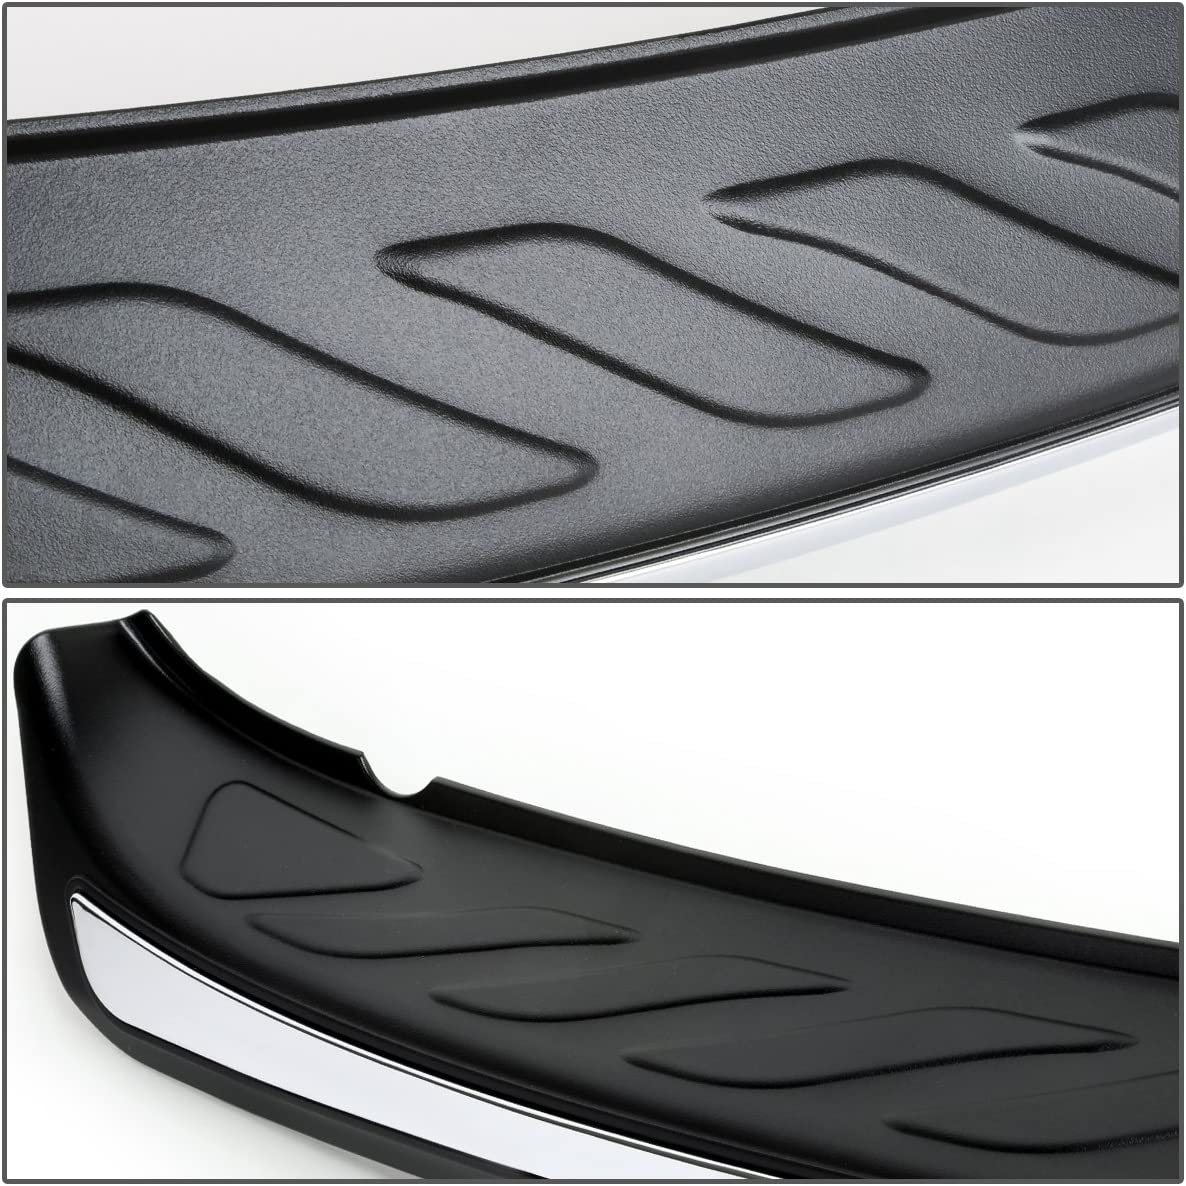 DNA MOTORING RBG-ABS-001 Trunk Sill Plate Rear Bumper Protector Fit 13-16 CX-5,Black